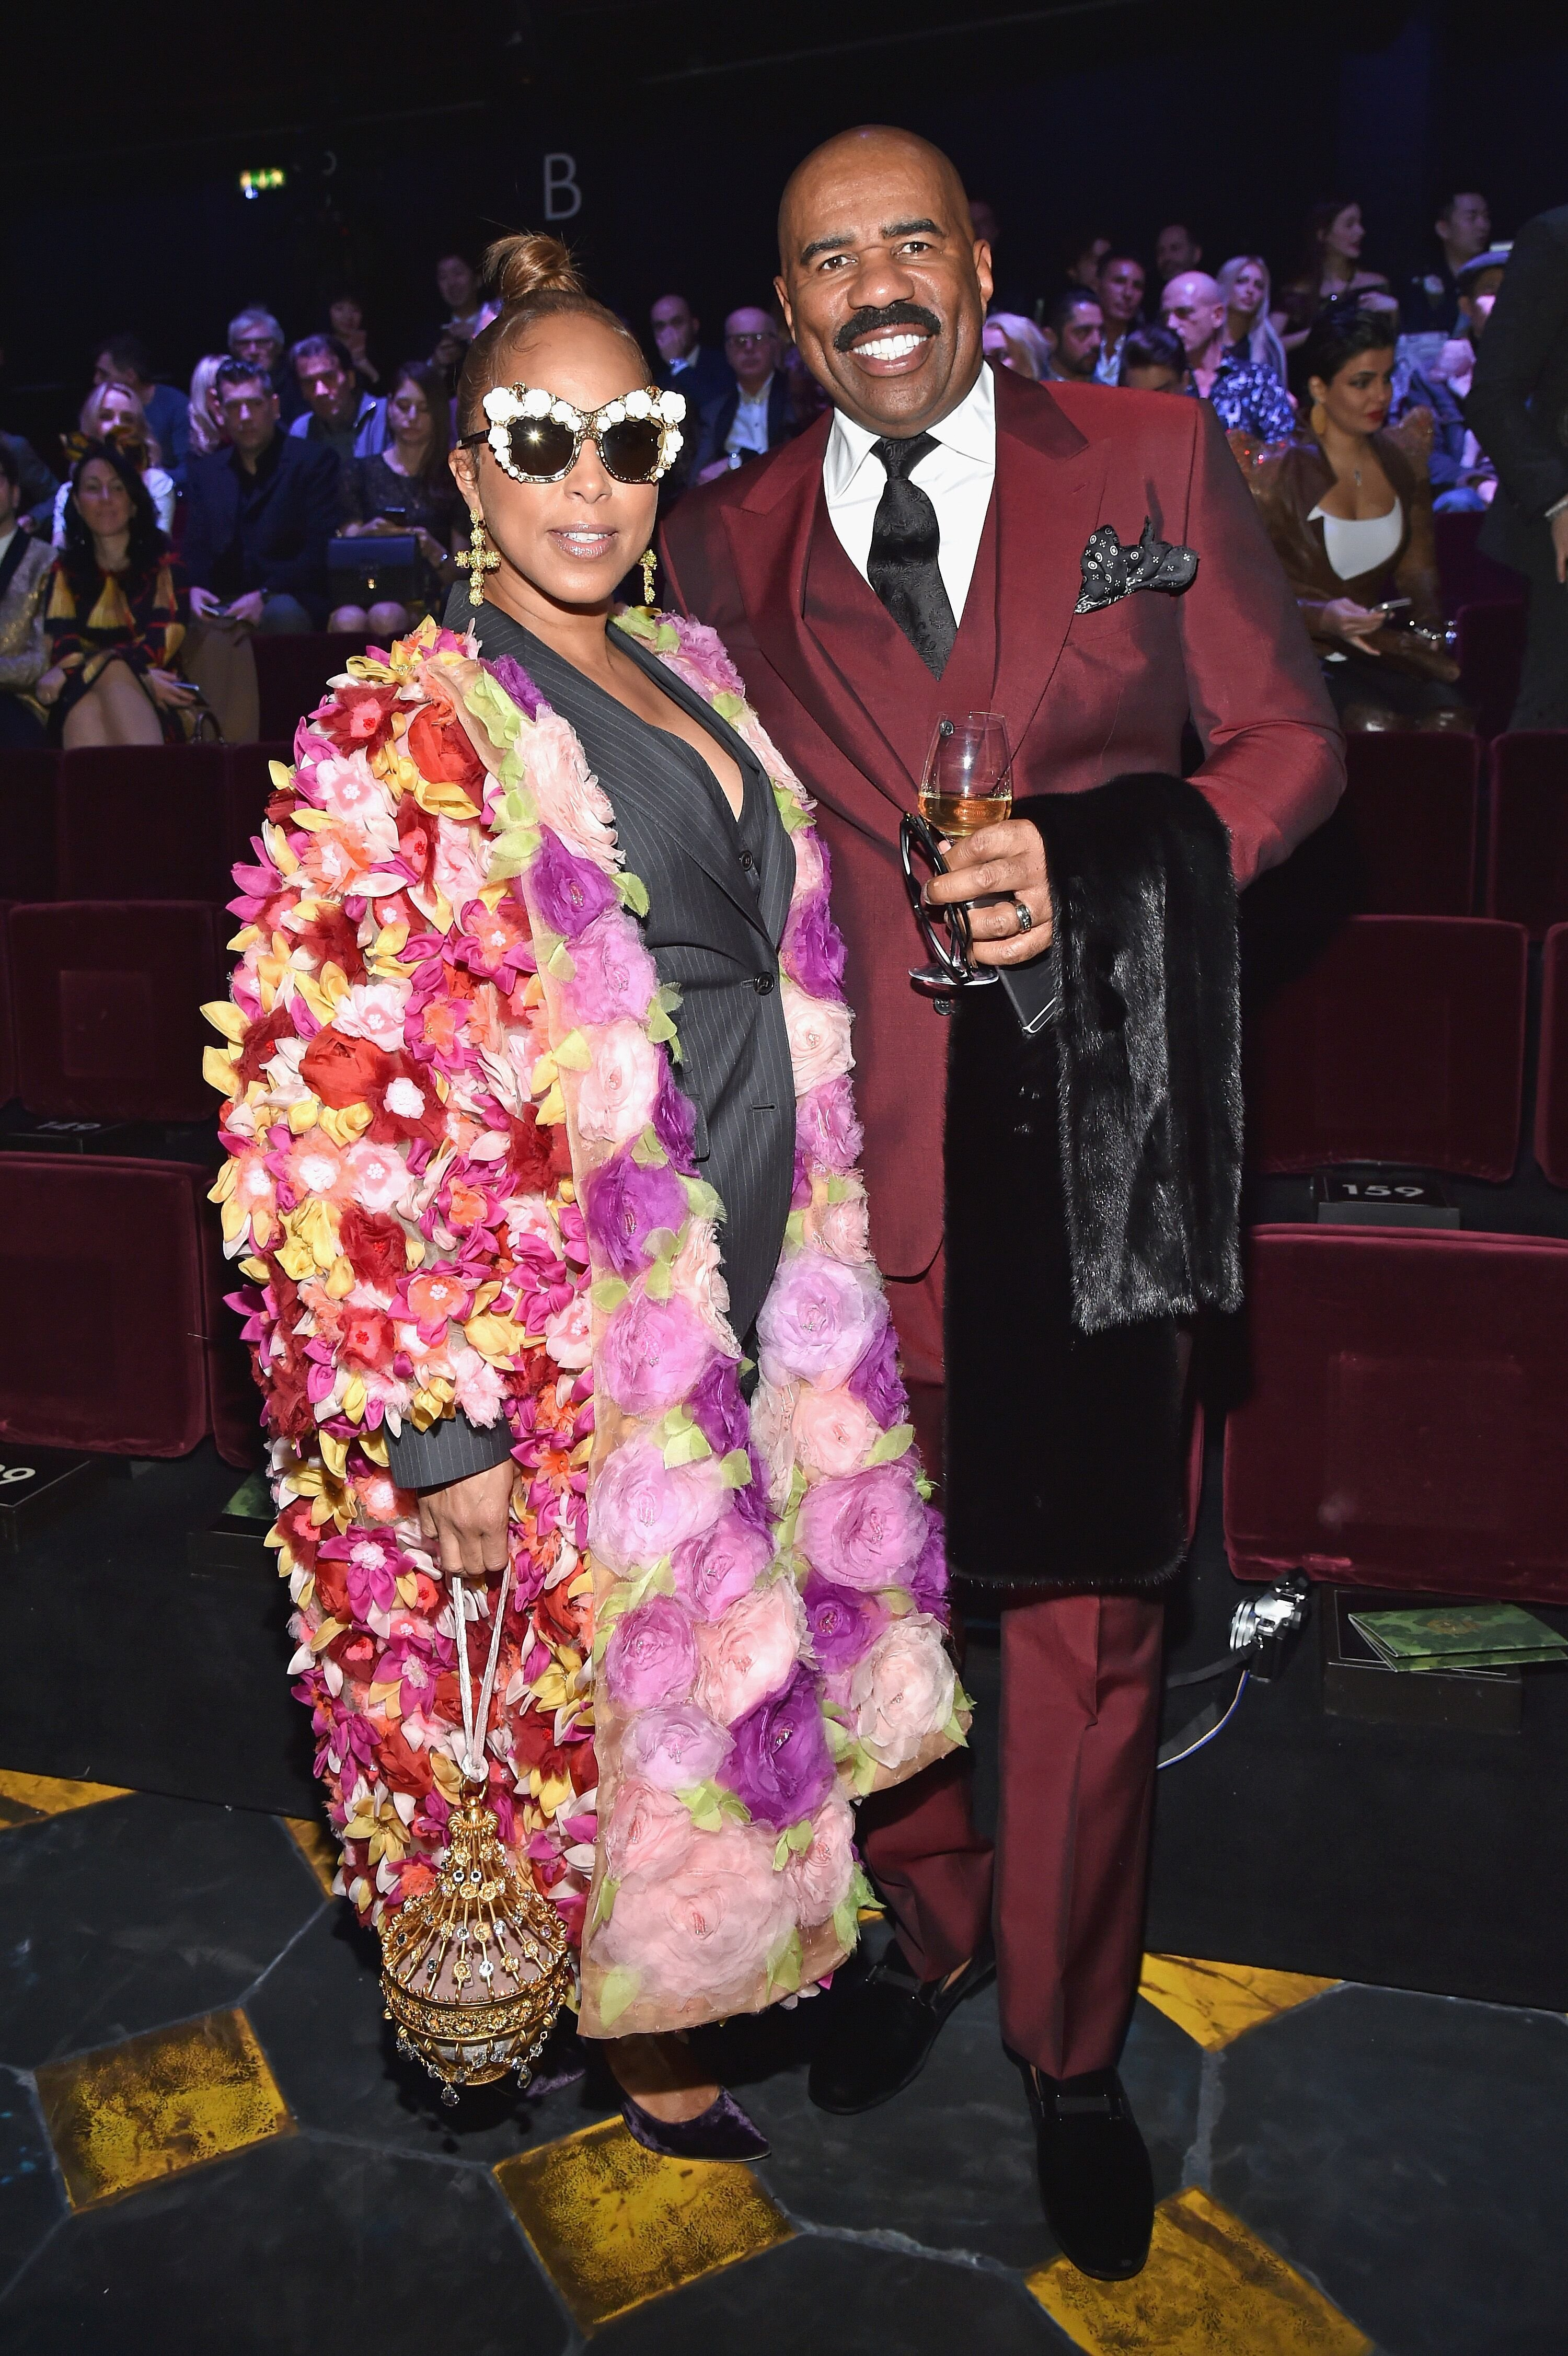 Marjorie Bridges-Woods and Steve Harvey attend the Dolce & Gabbana show during Milan Men's Fashion Week Fall/Winter 2017/18 on January 14, 2017 in Milan, Italy. | Source: Getty Images